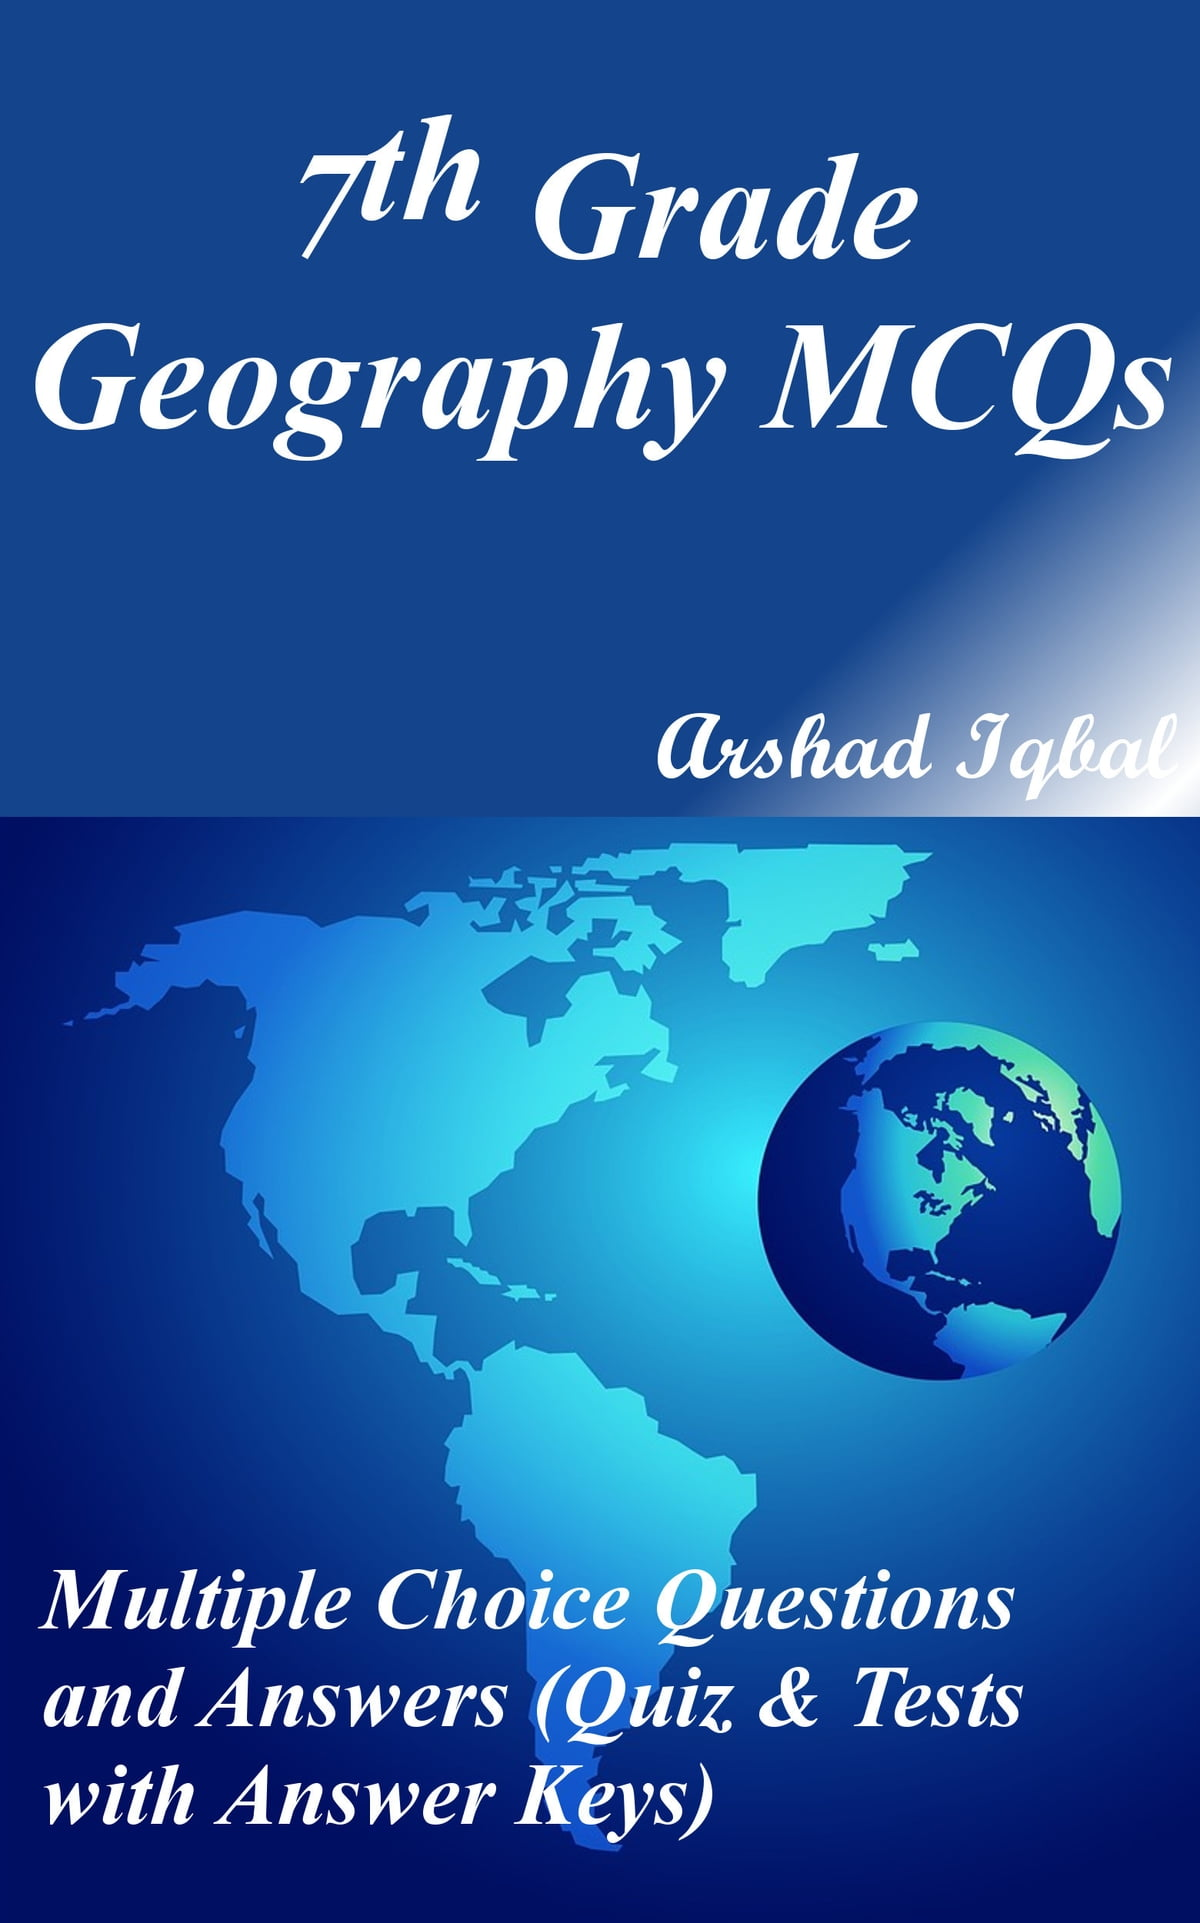 7th Grade Geography Mcqs Multiple Choice Questions And